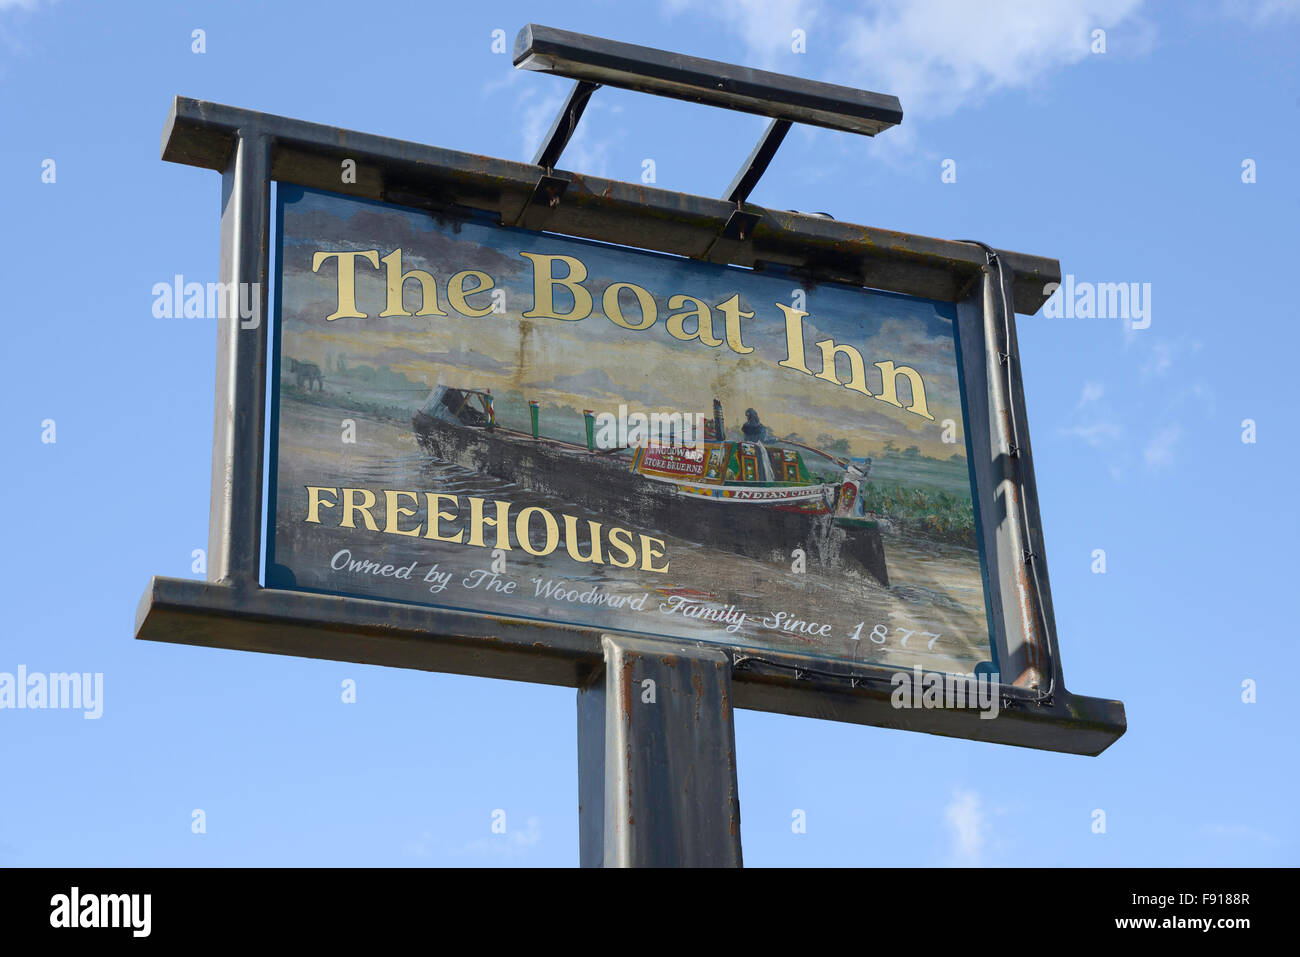 The Boat Inn Freehouse sign, Bridge Road, Stoke Bruerne, Northamptonshire, England, United Kingdom - Stock Image